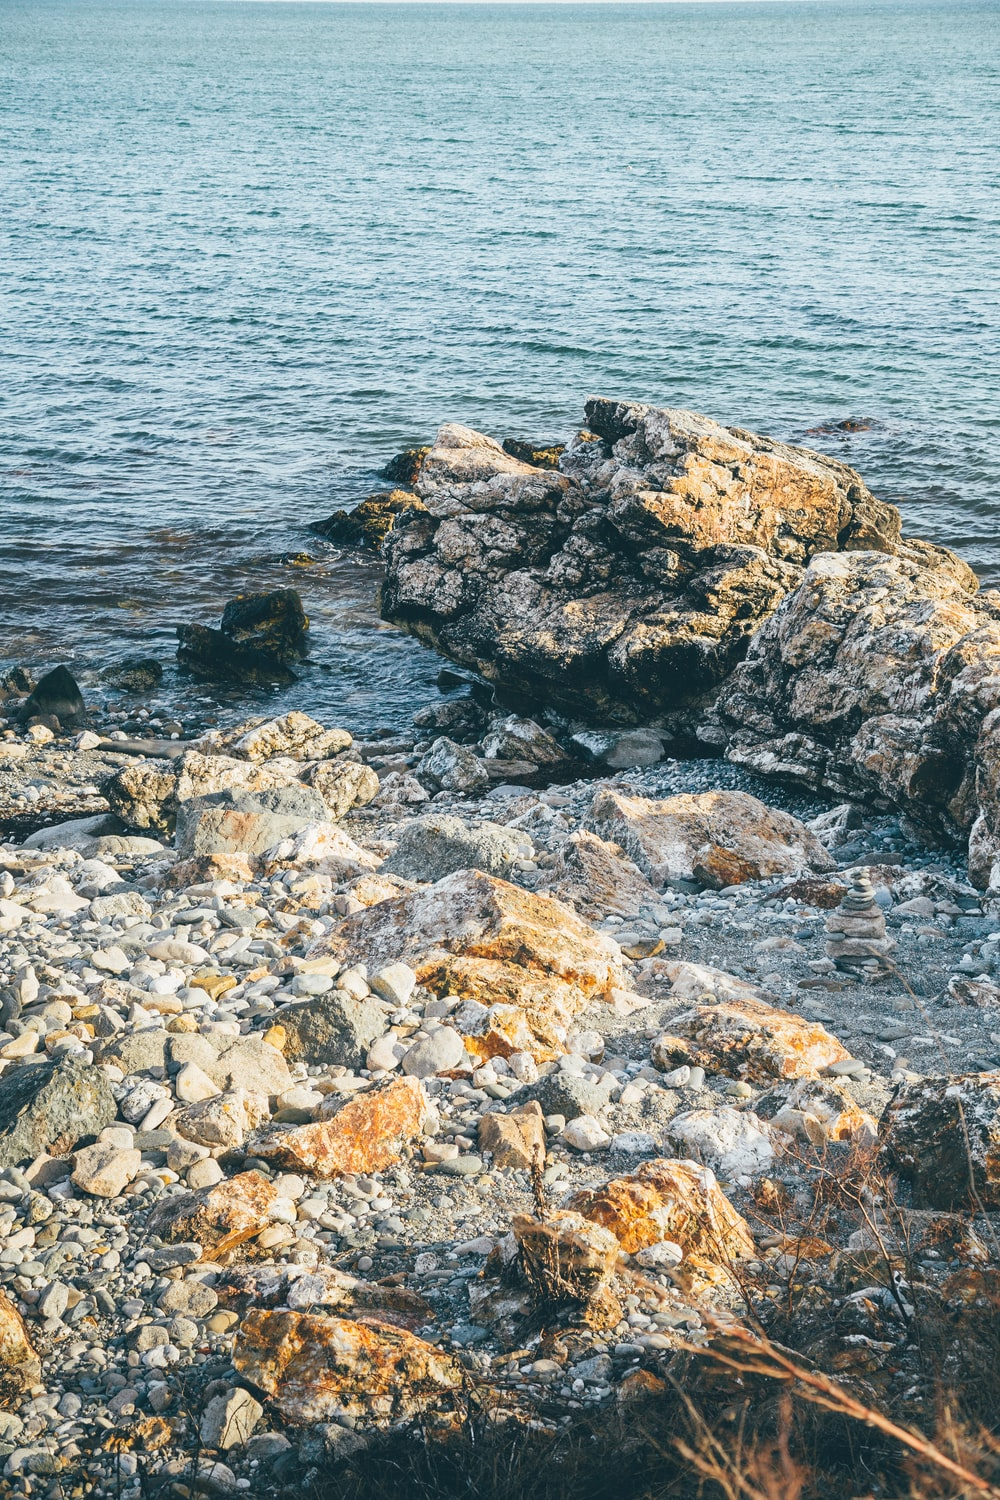 gray and brown rocks beside body of water during daytime